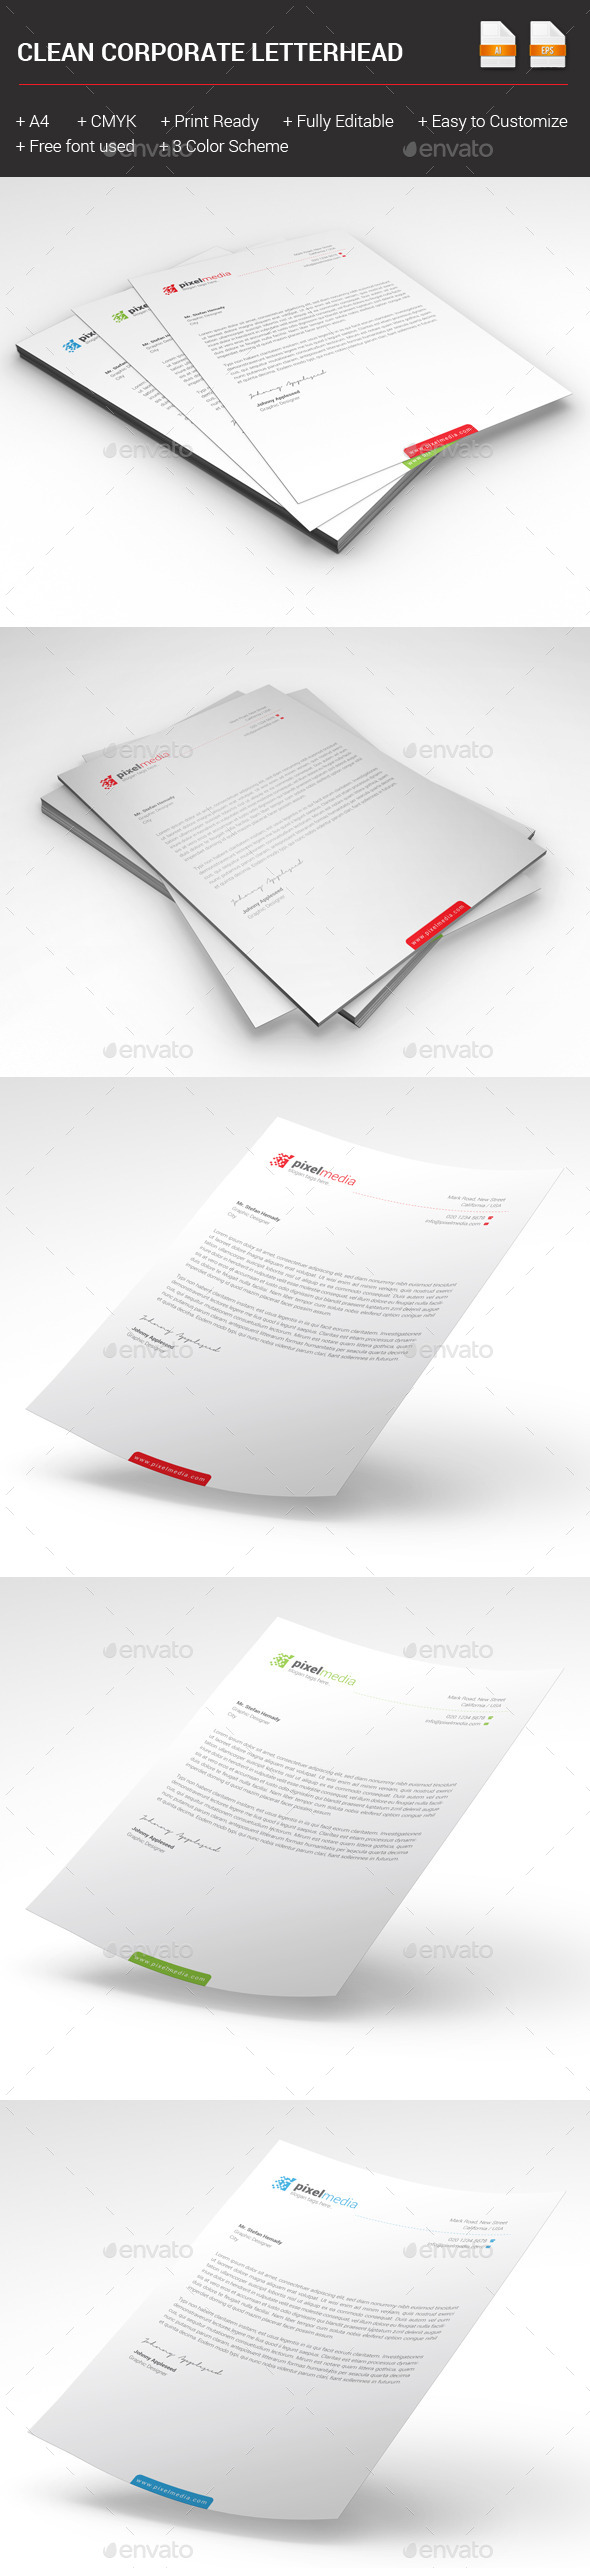 GraphicRiver Clean Corporate Letterhead 10240599